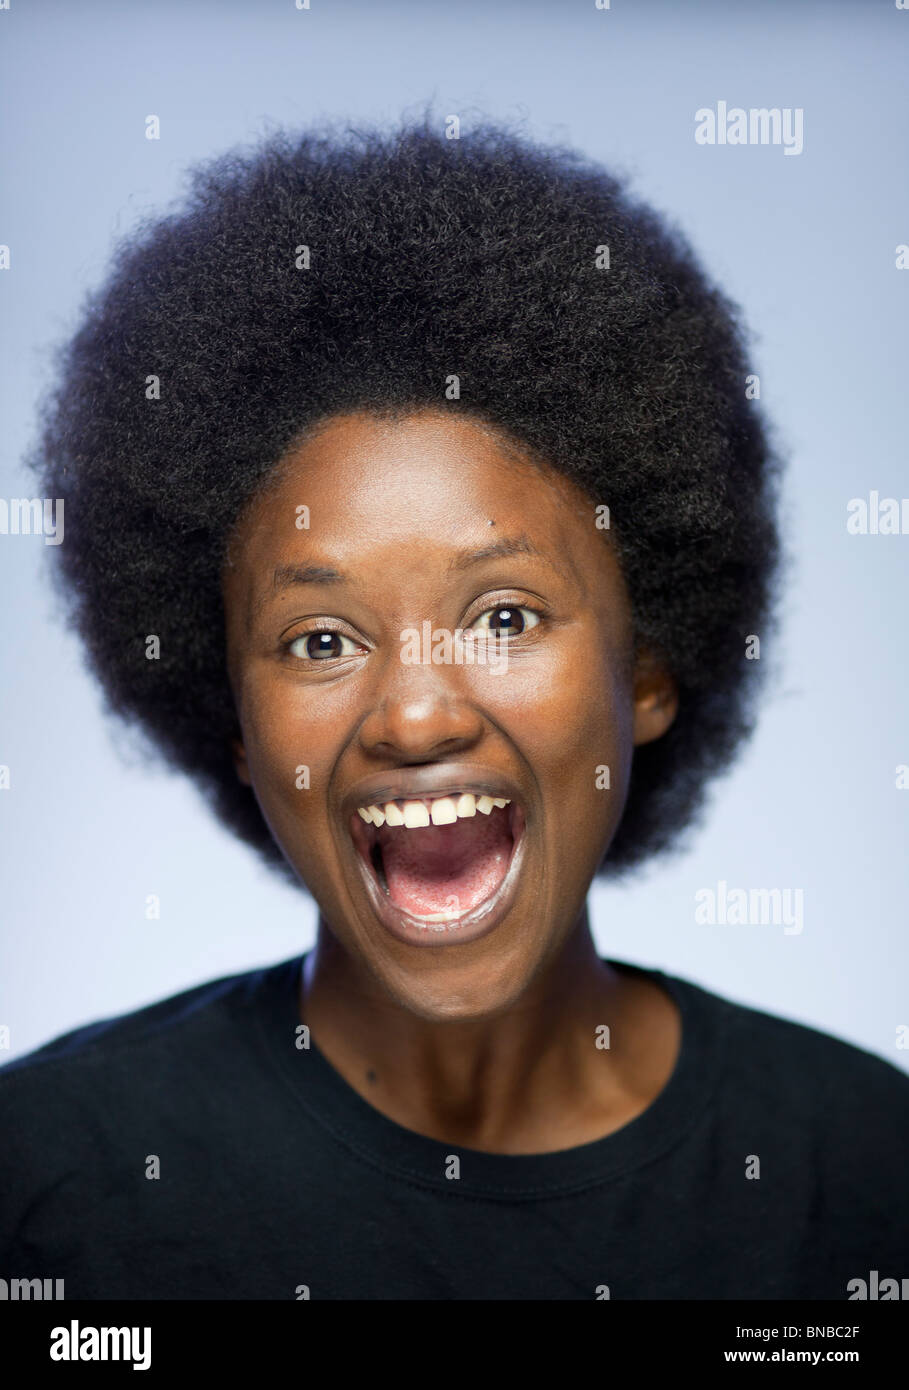 Close Up Portrait Of Joyful Young Black Woman With Afro